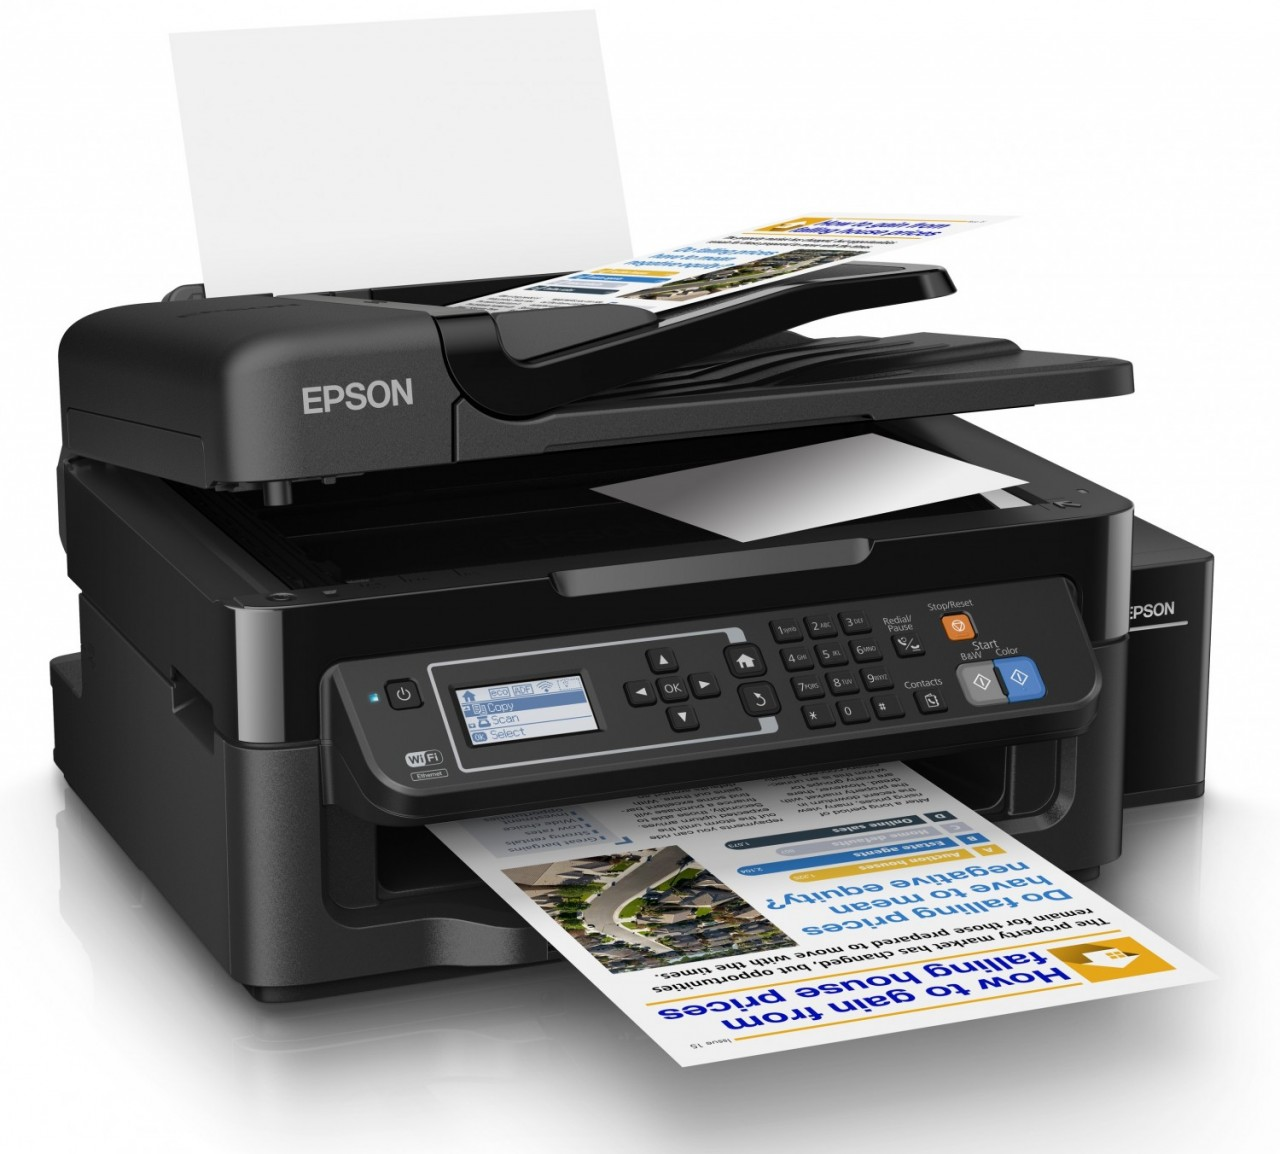 Epson L565 Print Scanner Copy Fax Price In Pakistan